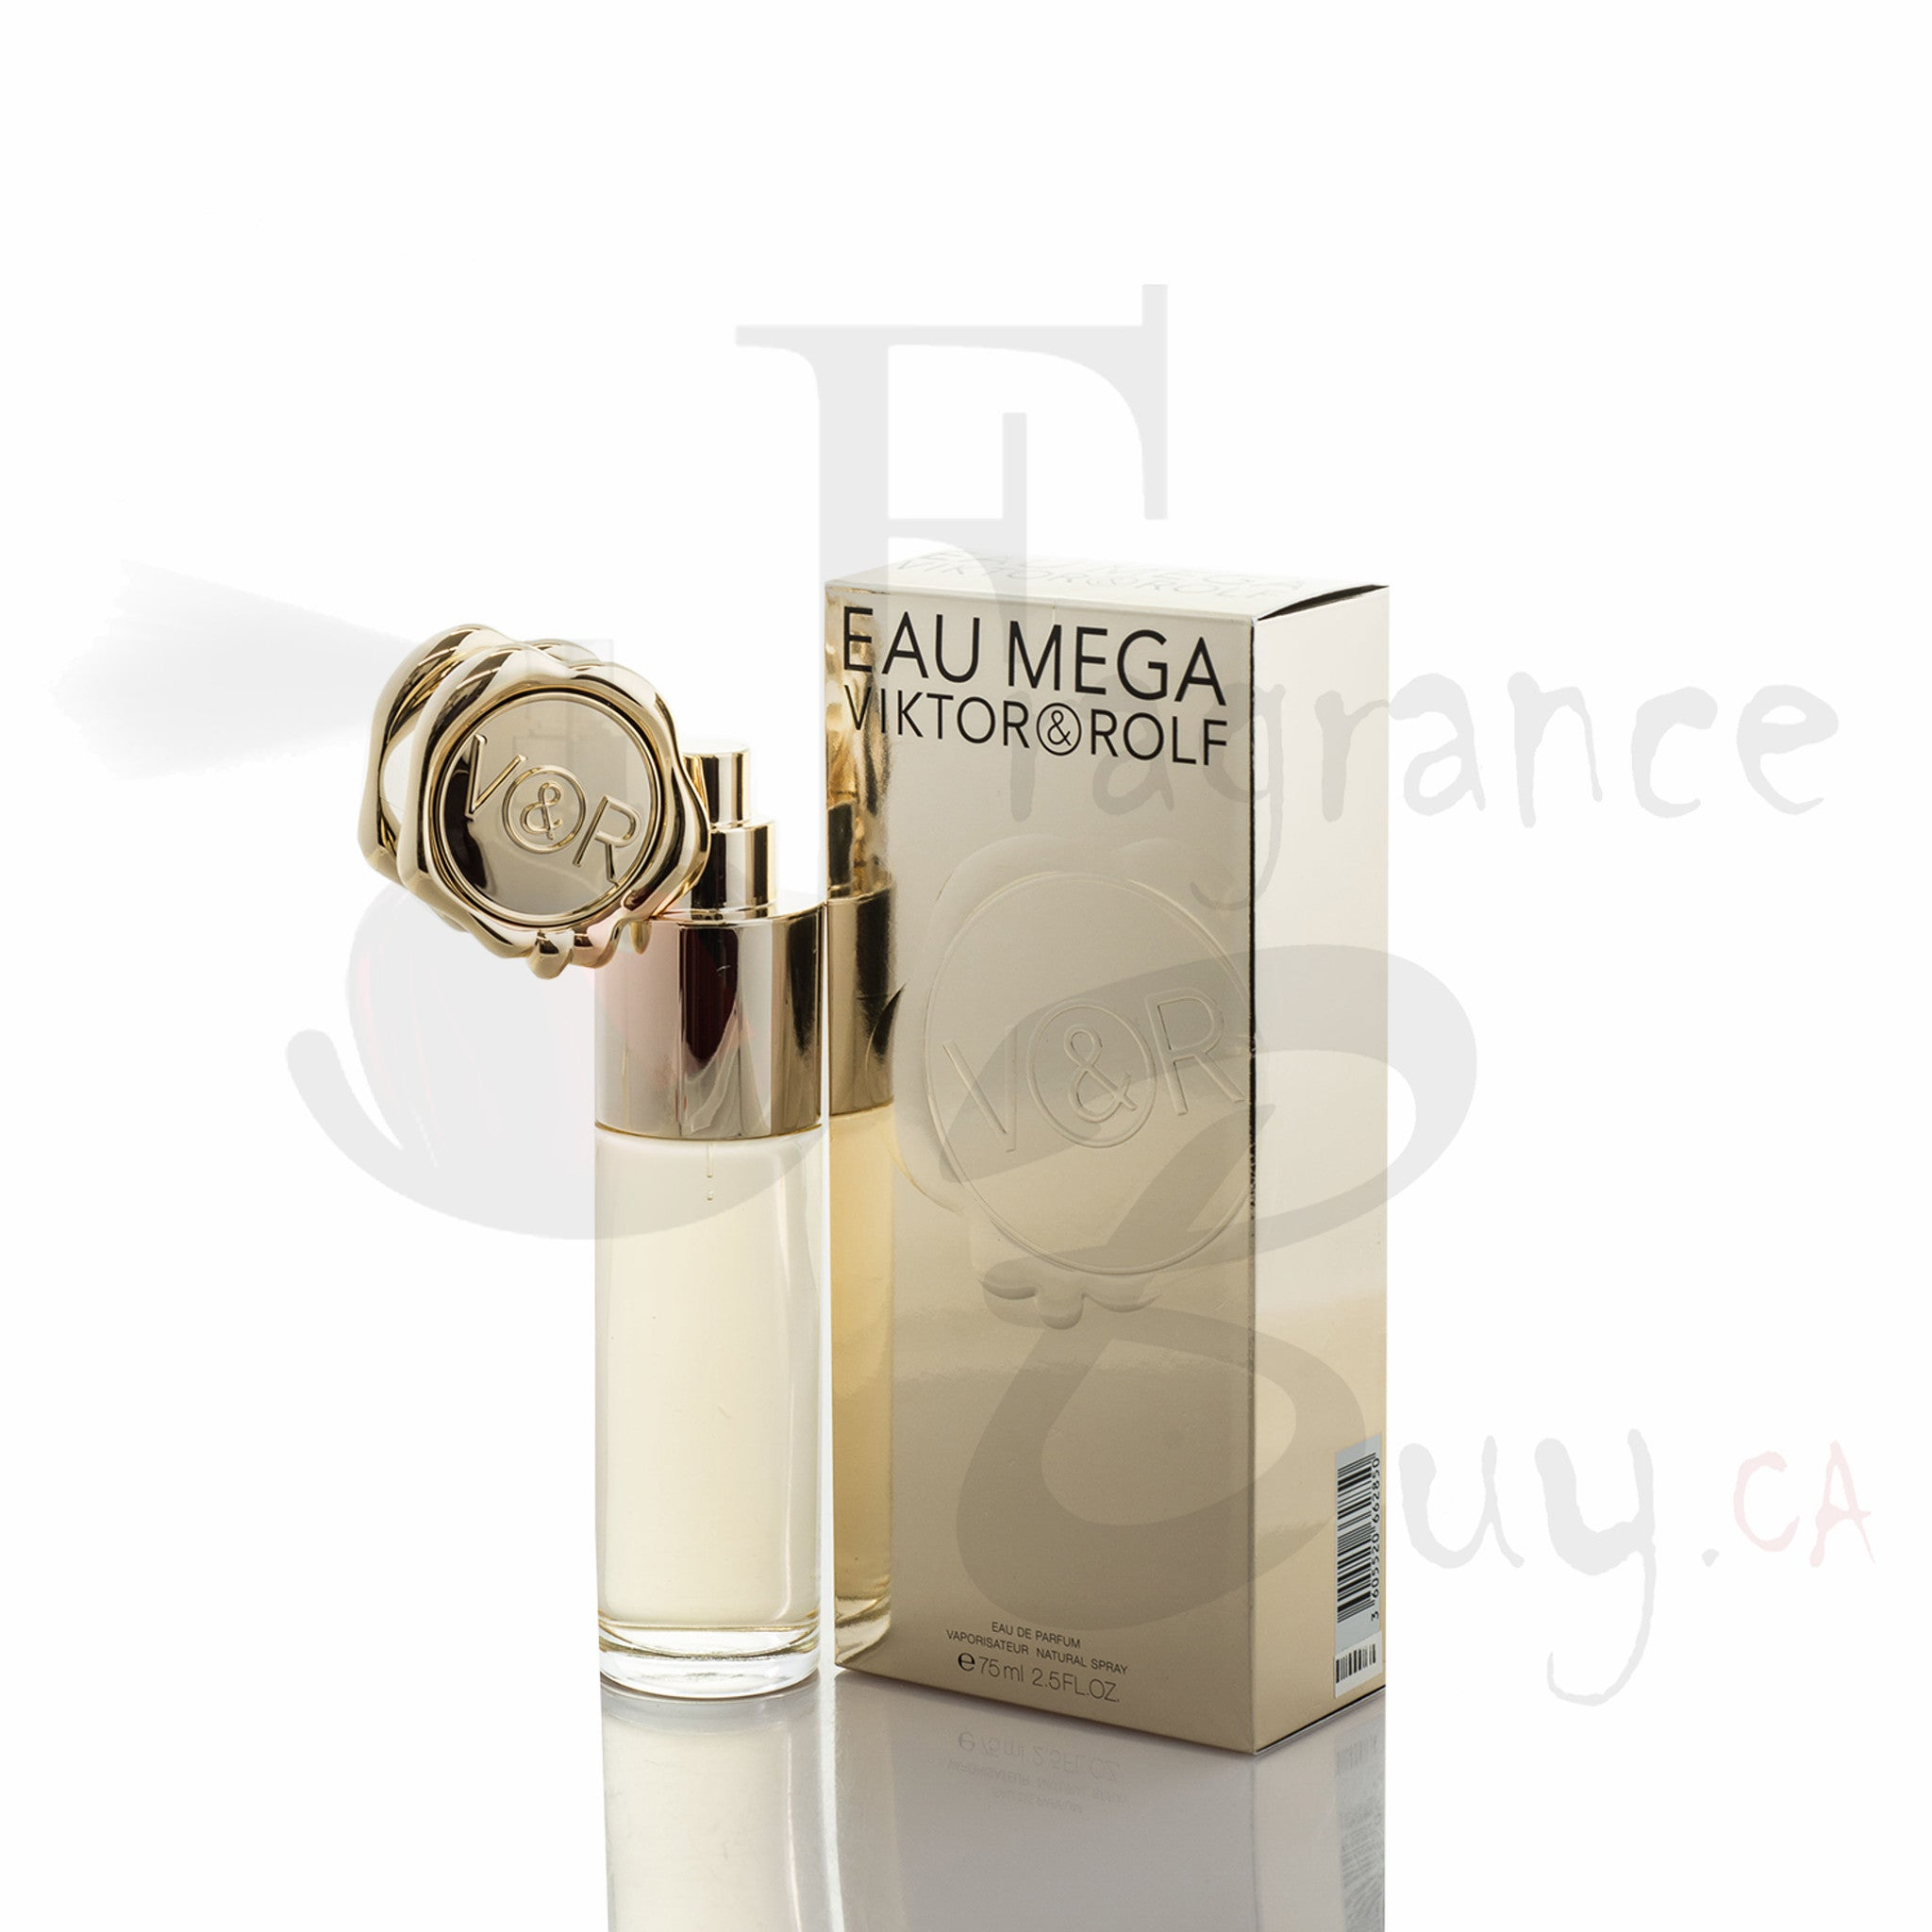 Victor & Rolf Eau Mega For Woman